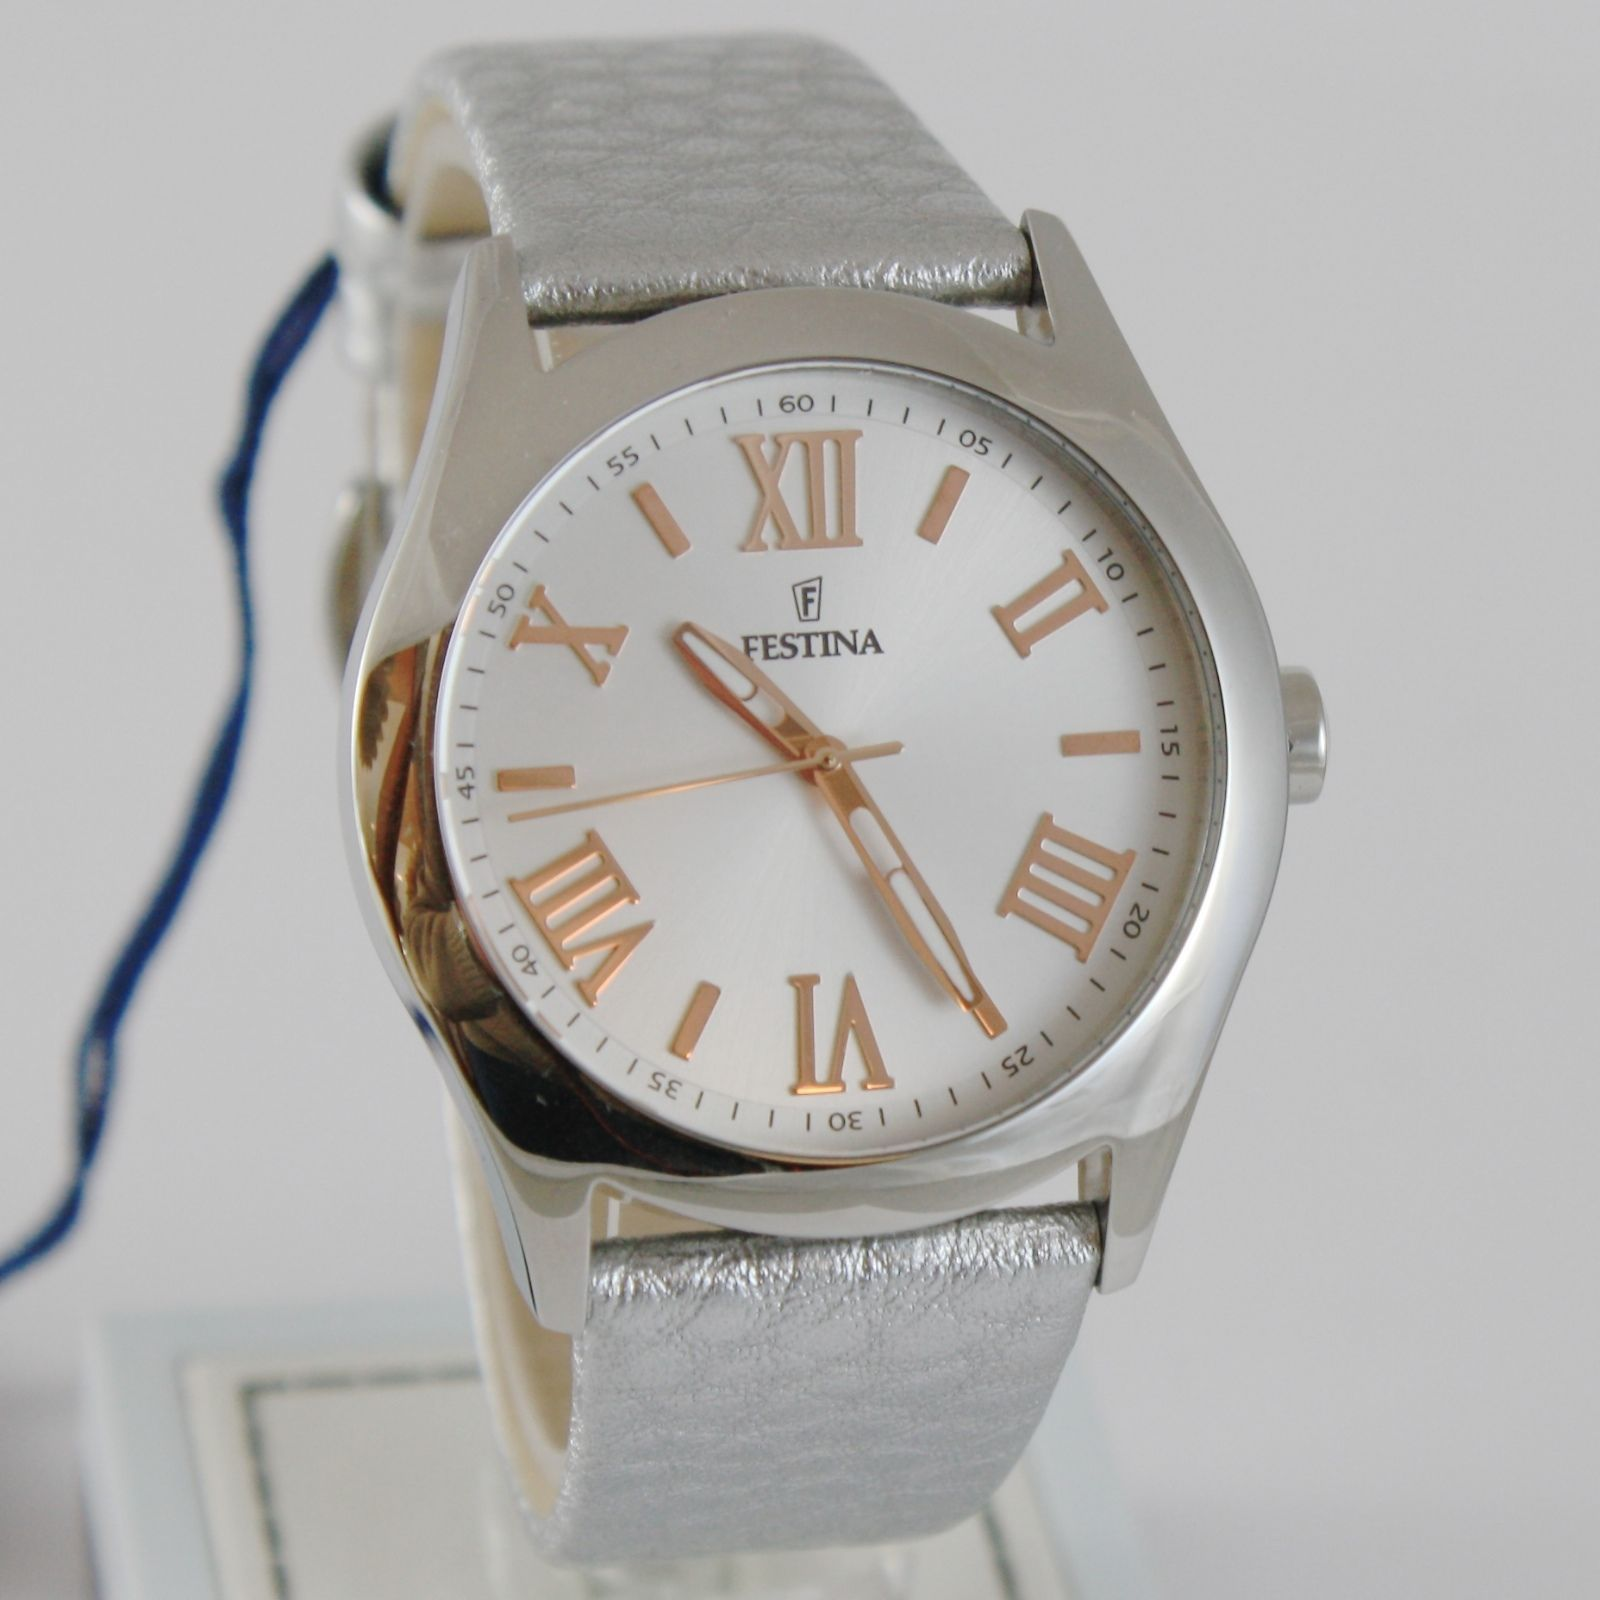 FESTINA WATCH QUARTZ MOVEMENT 38 MM CASE, 5 ATM, WHITE FACE, SILVER LEATHER BAND